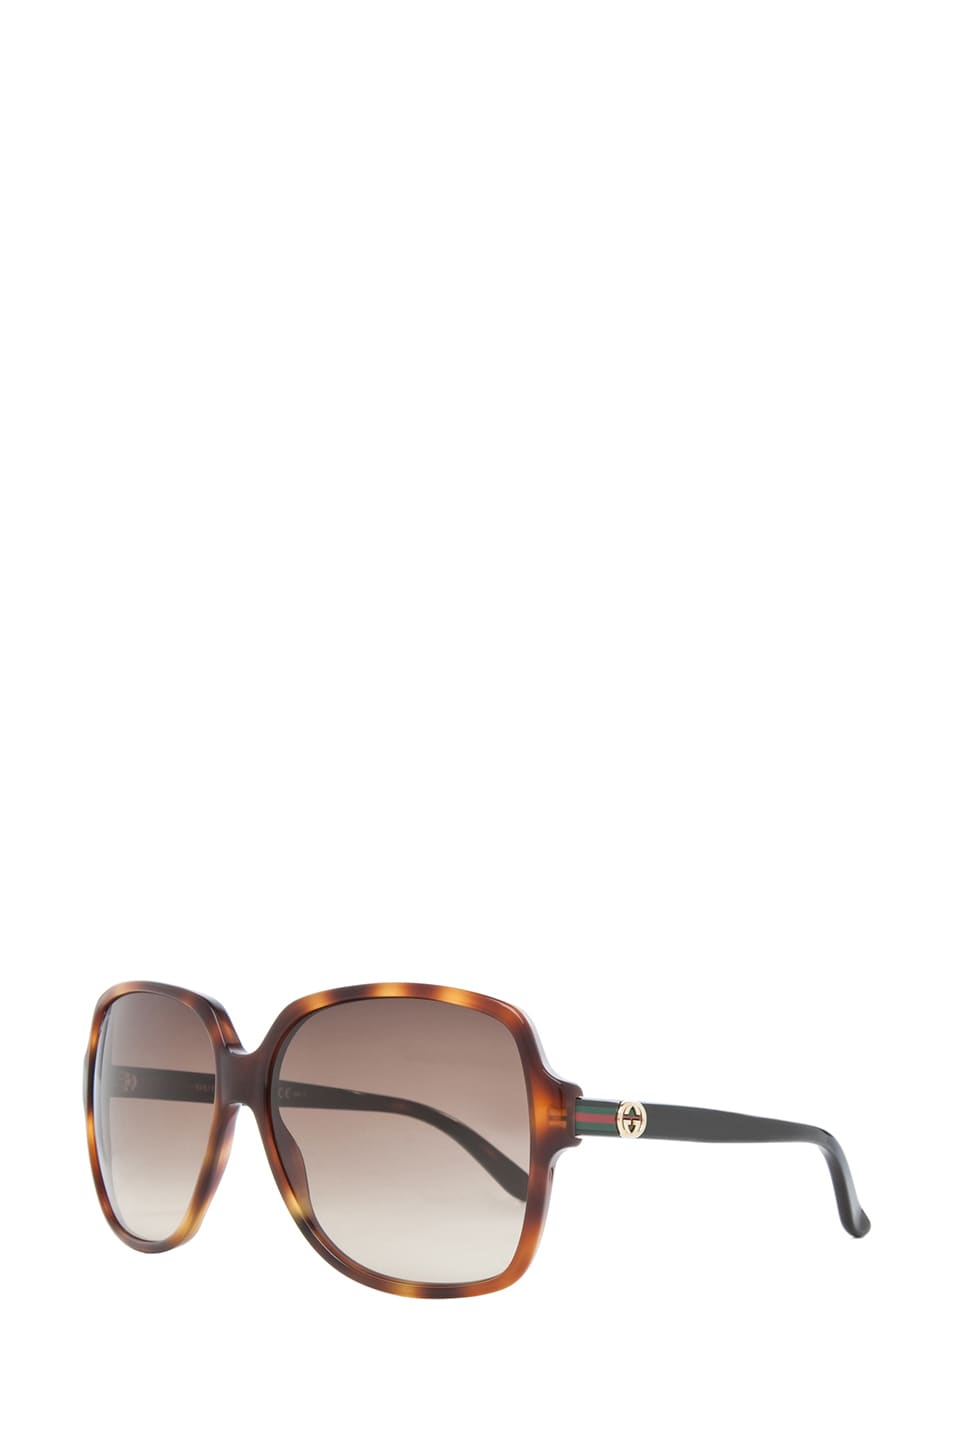 Image 2 of Gucci 3582 Sunglasses in Havana & Brown Gradient